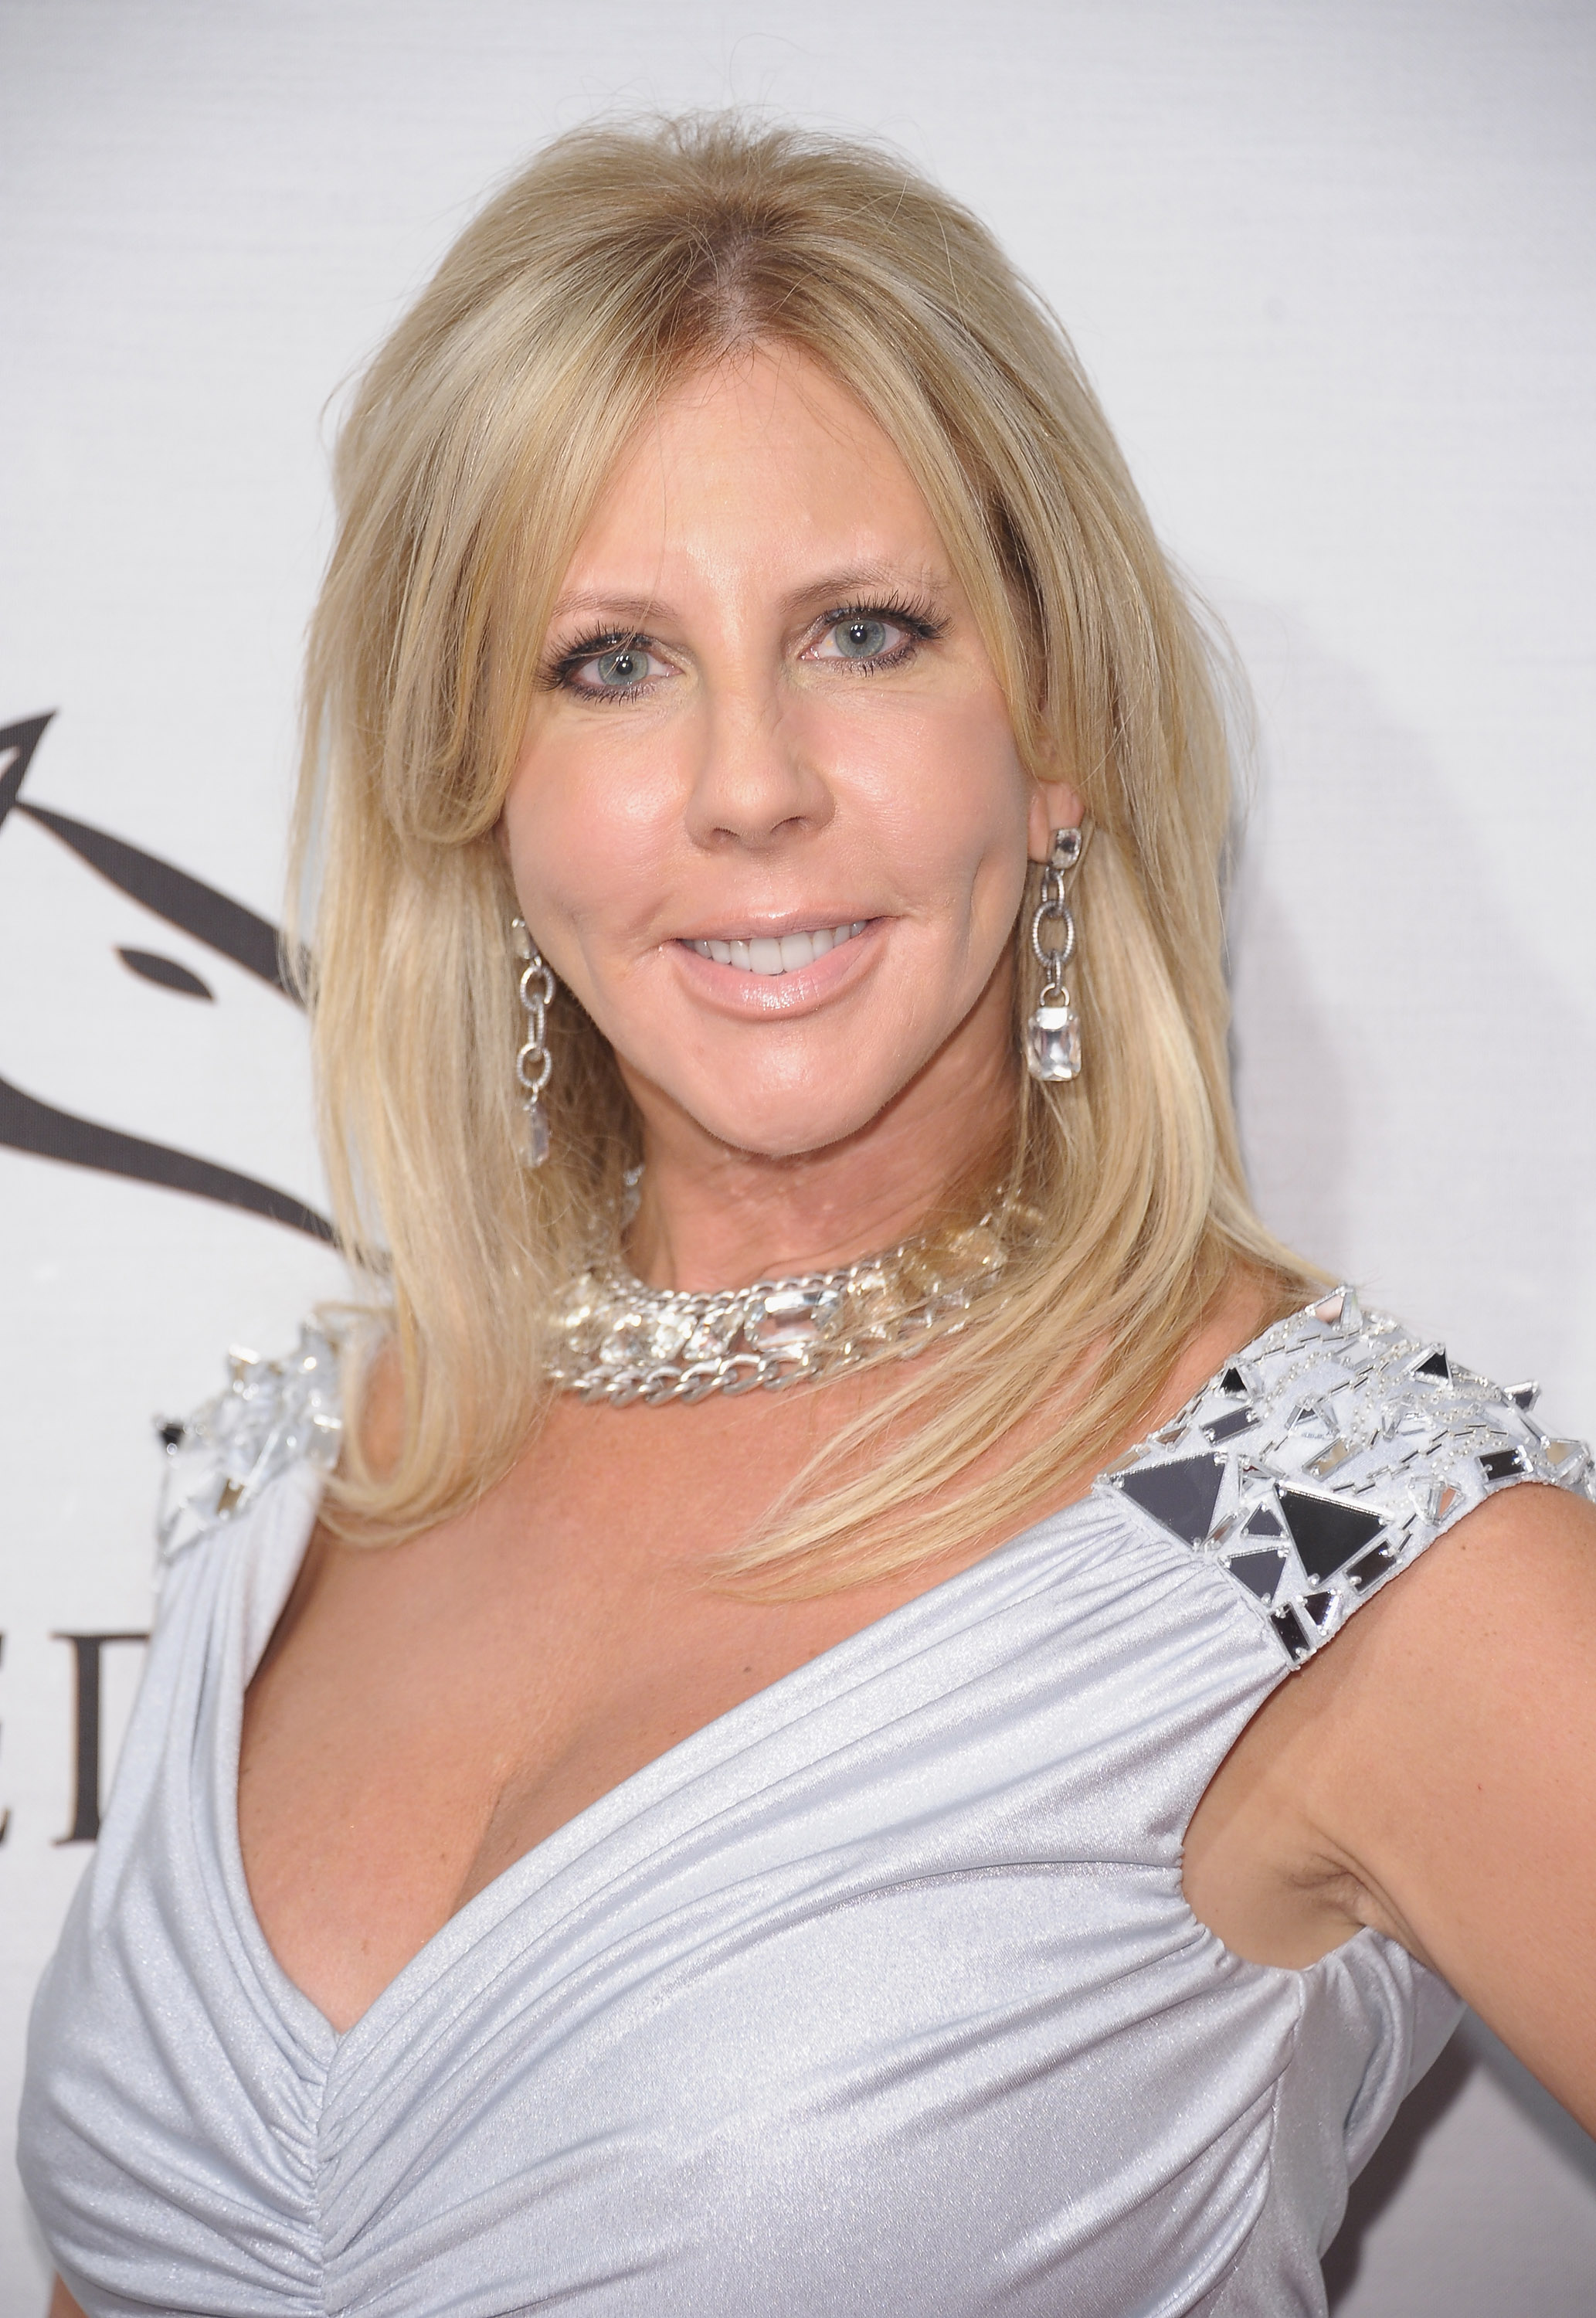 Vicki Gunvalson in a white dress looking at the camera